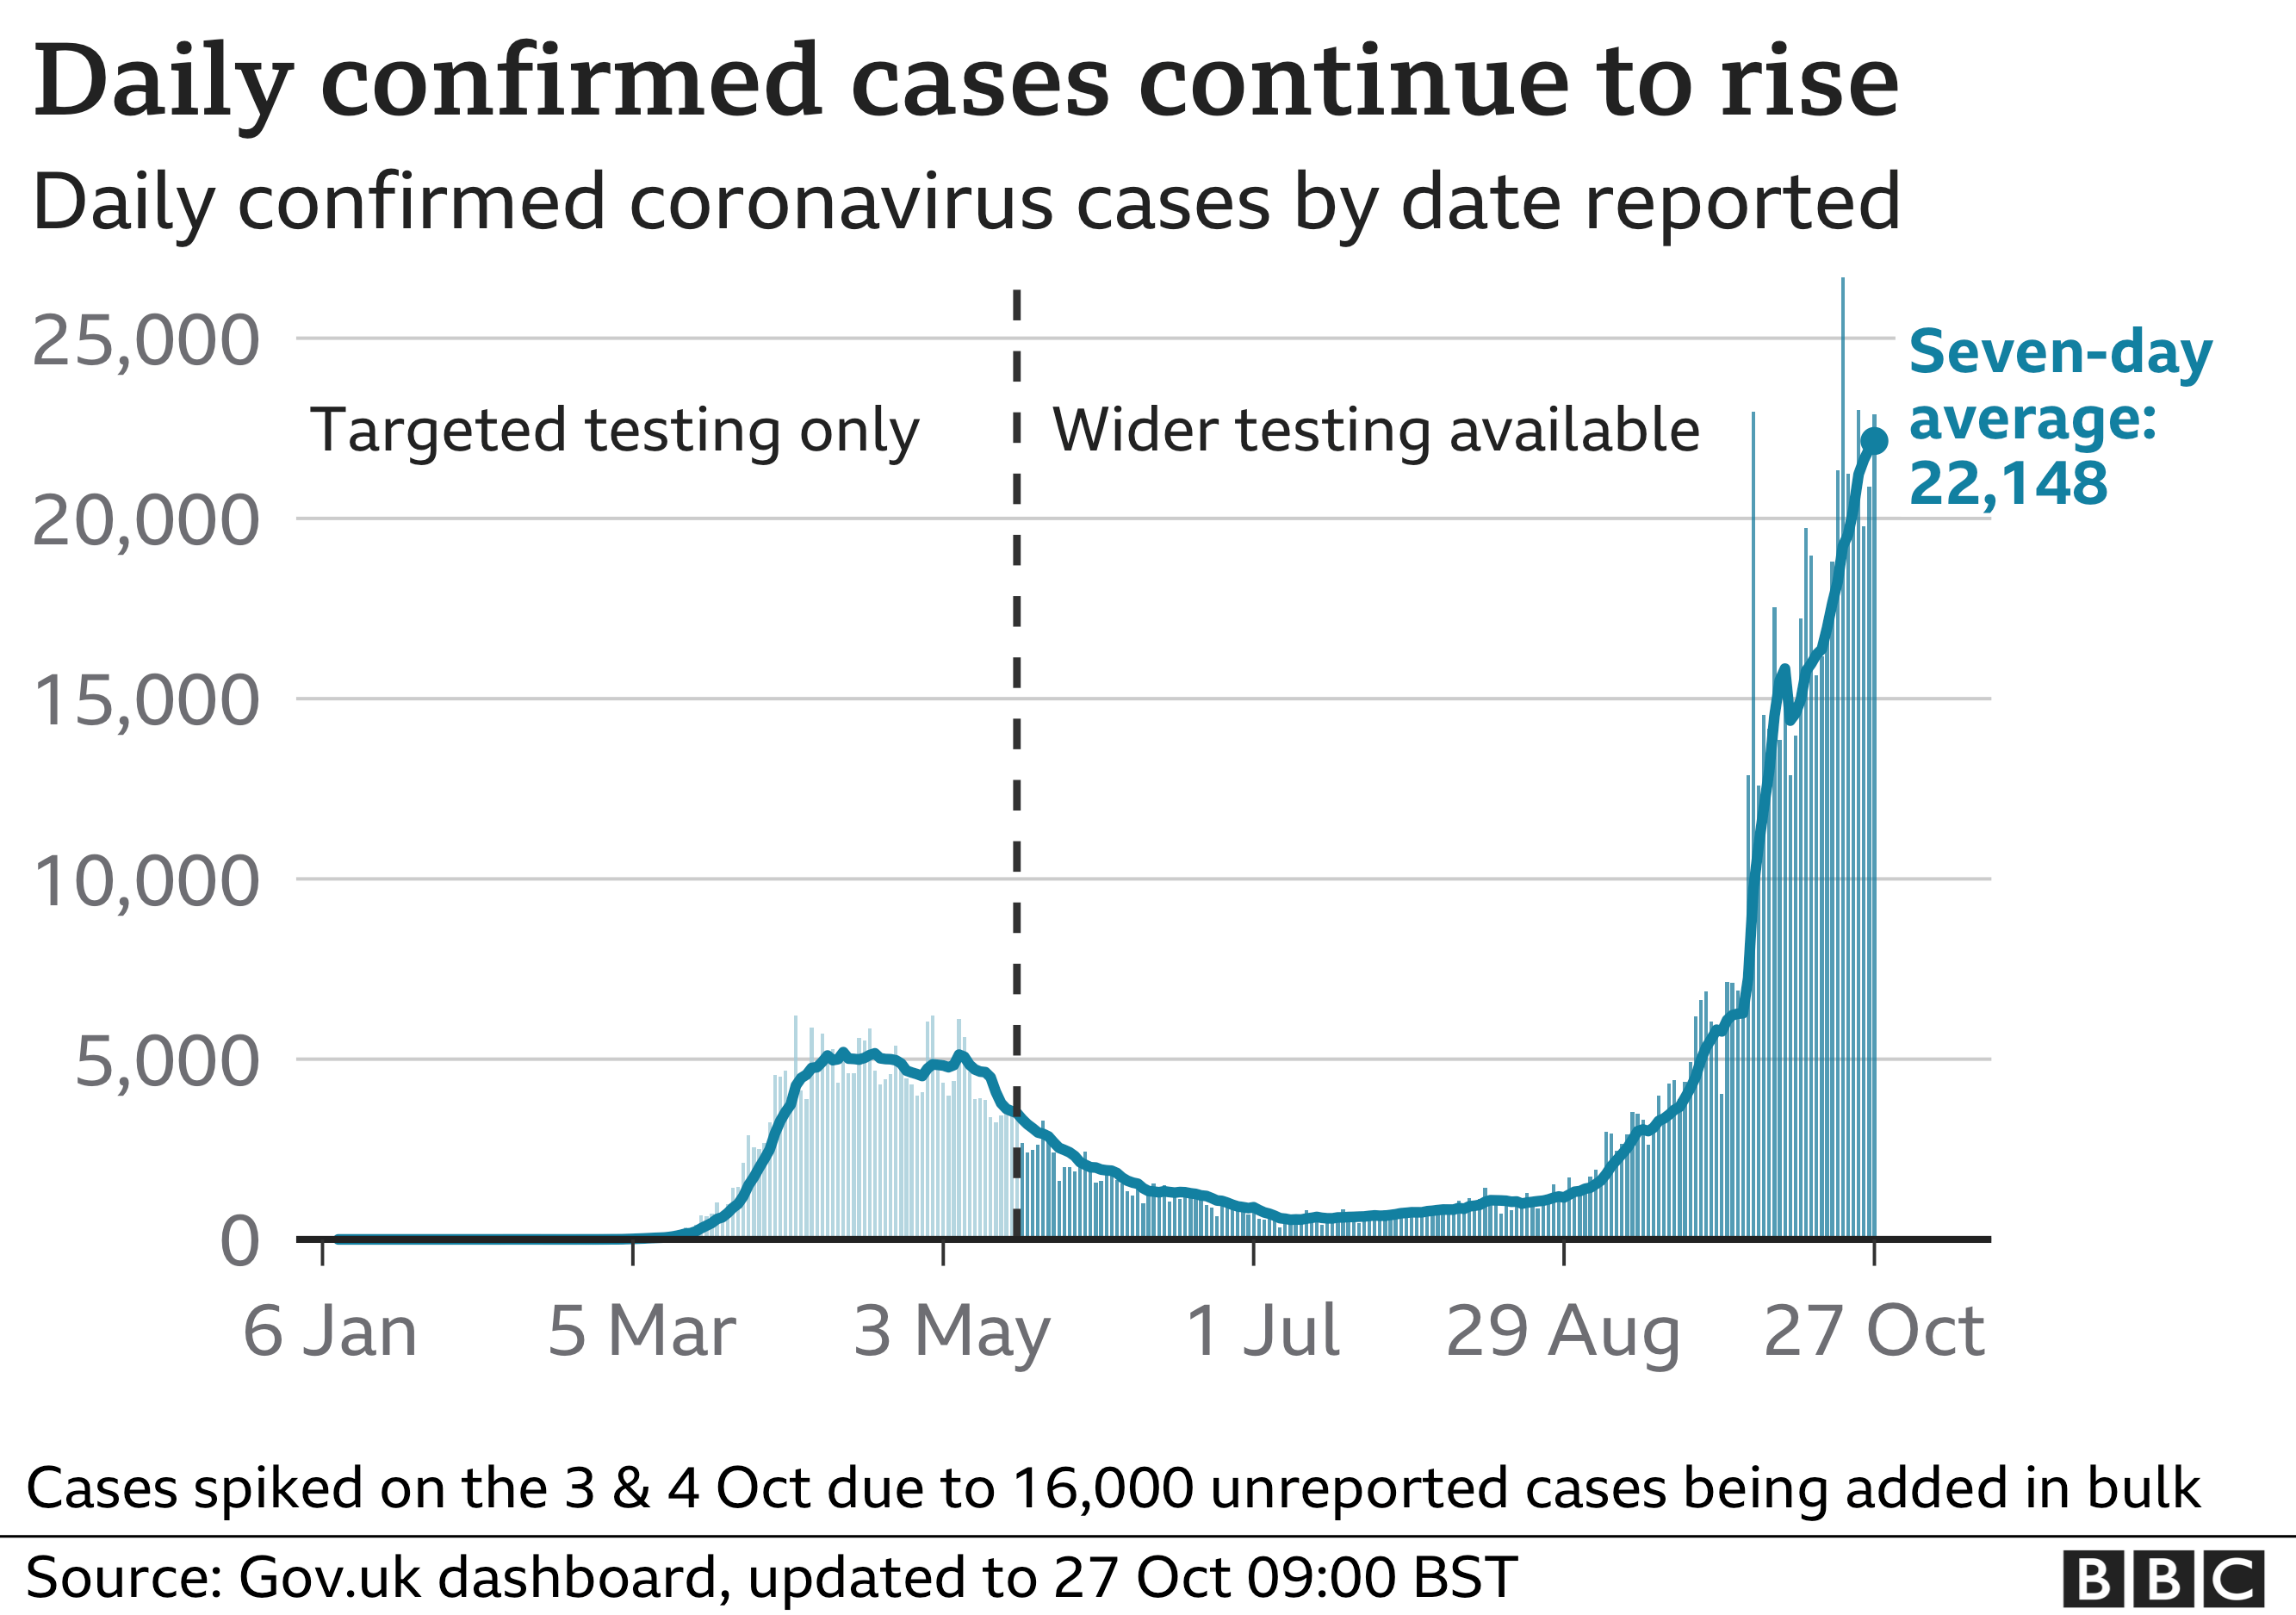 Chart shows daily confirmed cases continuing to rise steeply